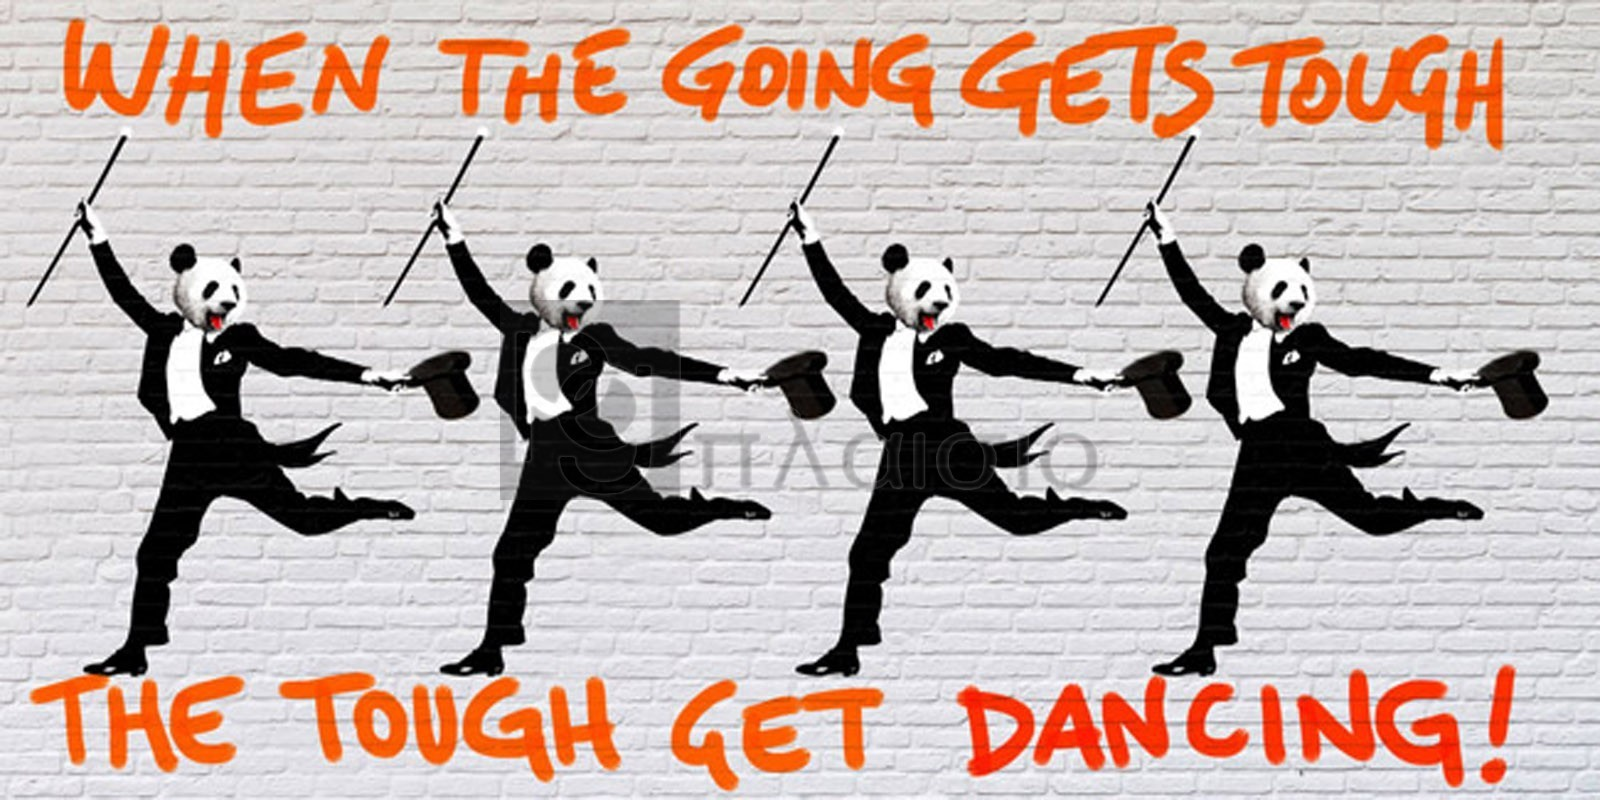 MASTERFUNK COLLECTIVE - When the going gets tough....